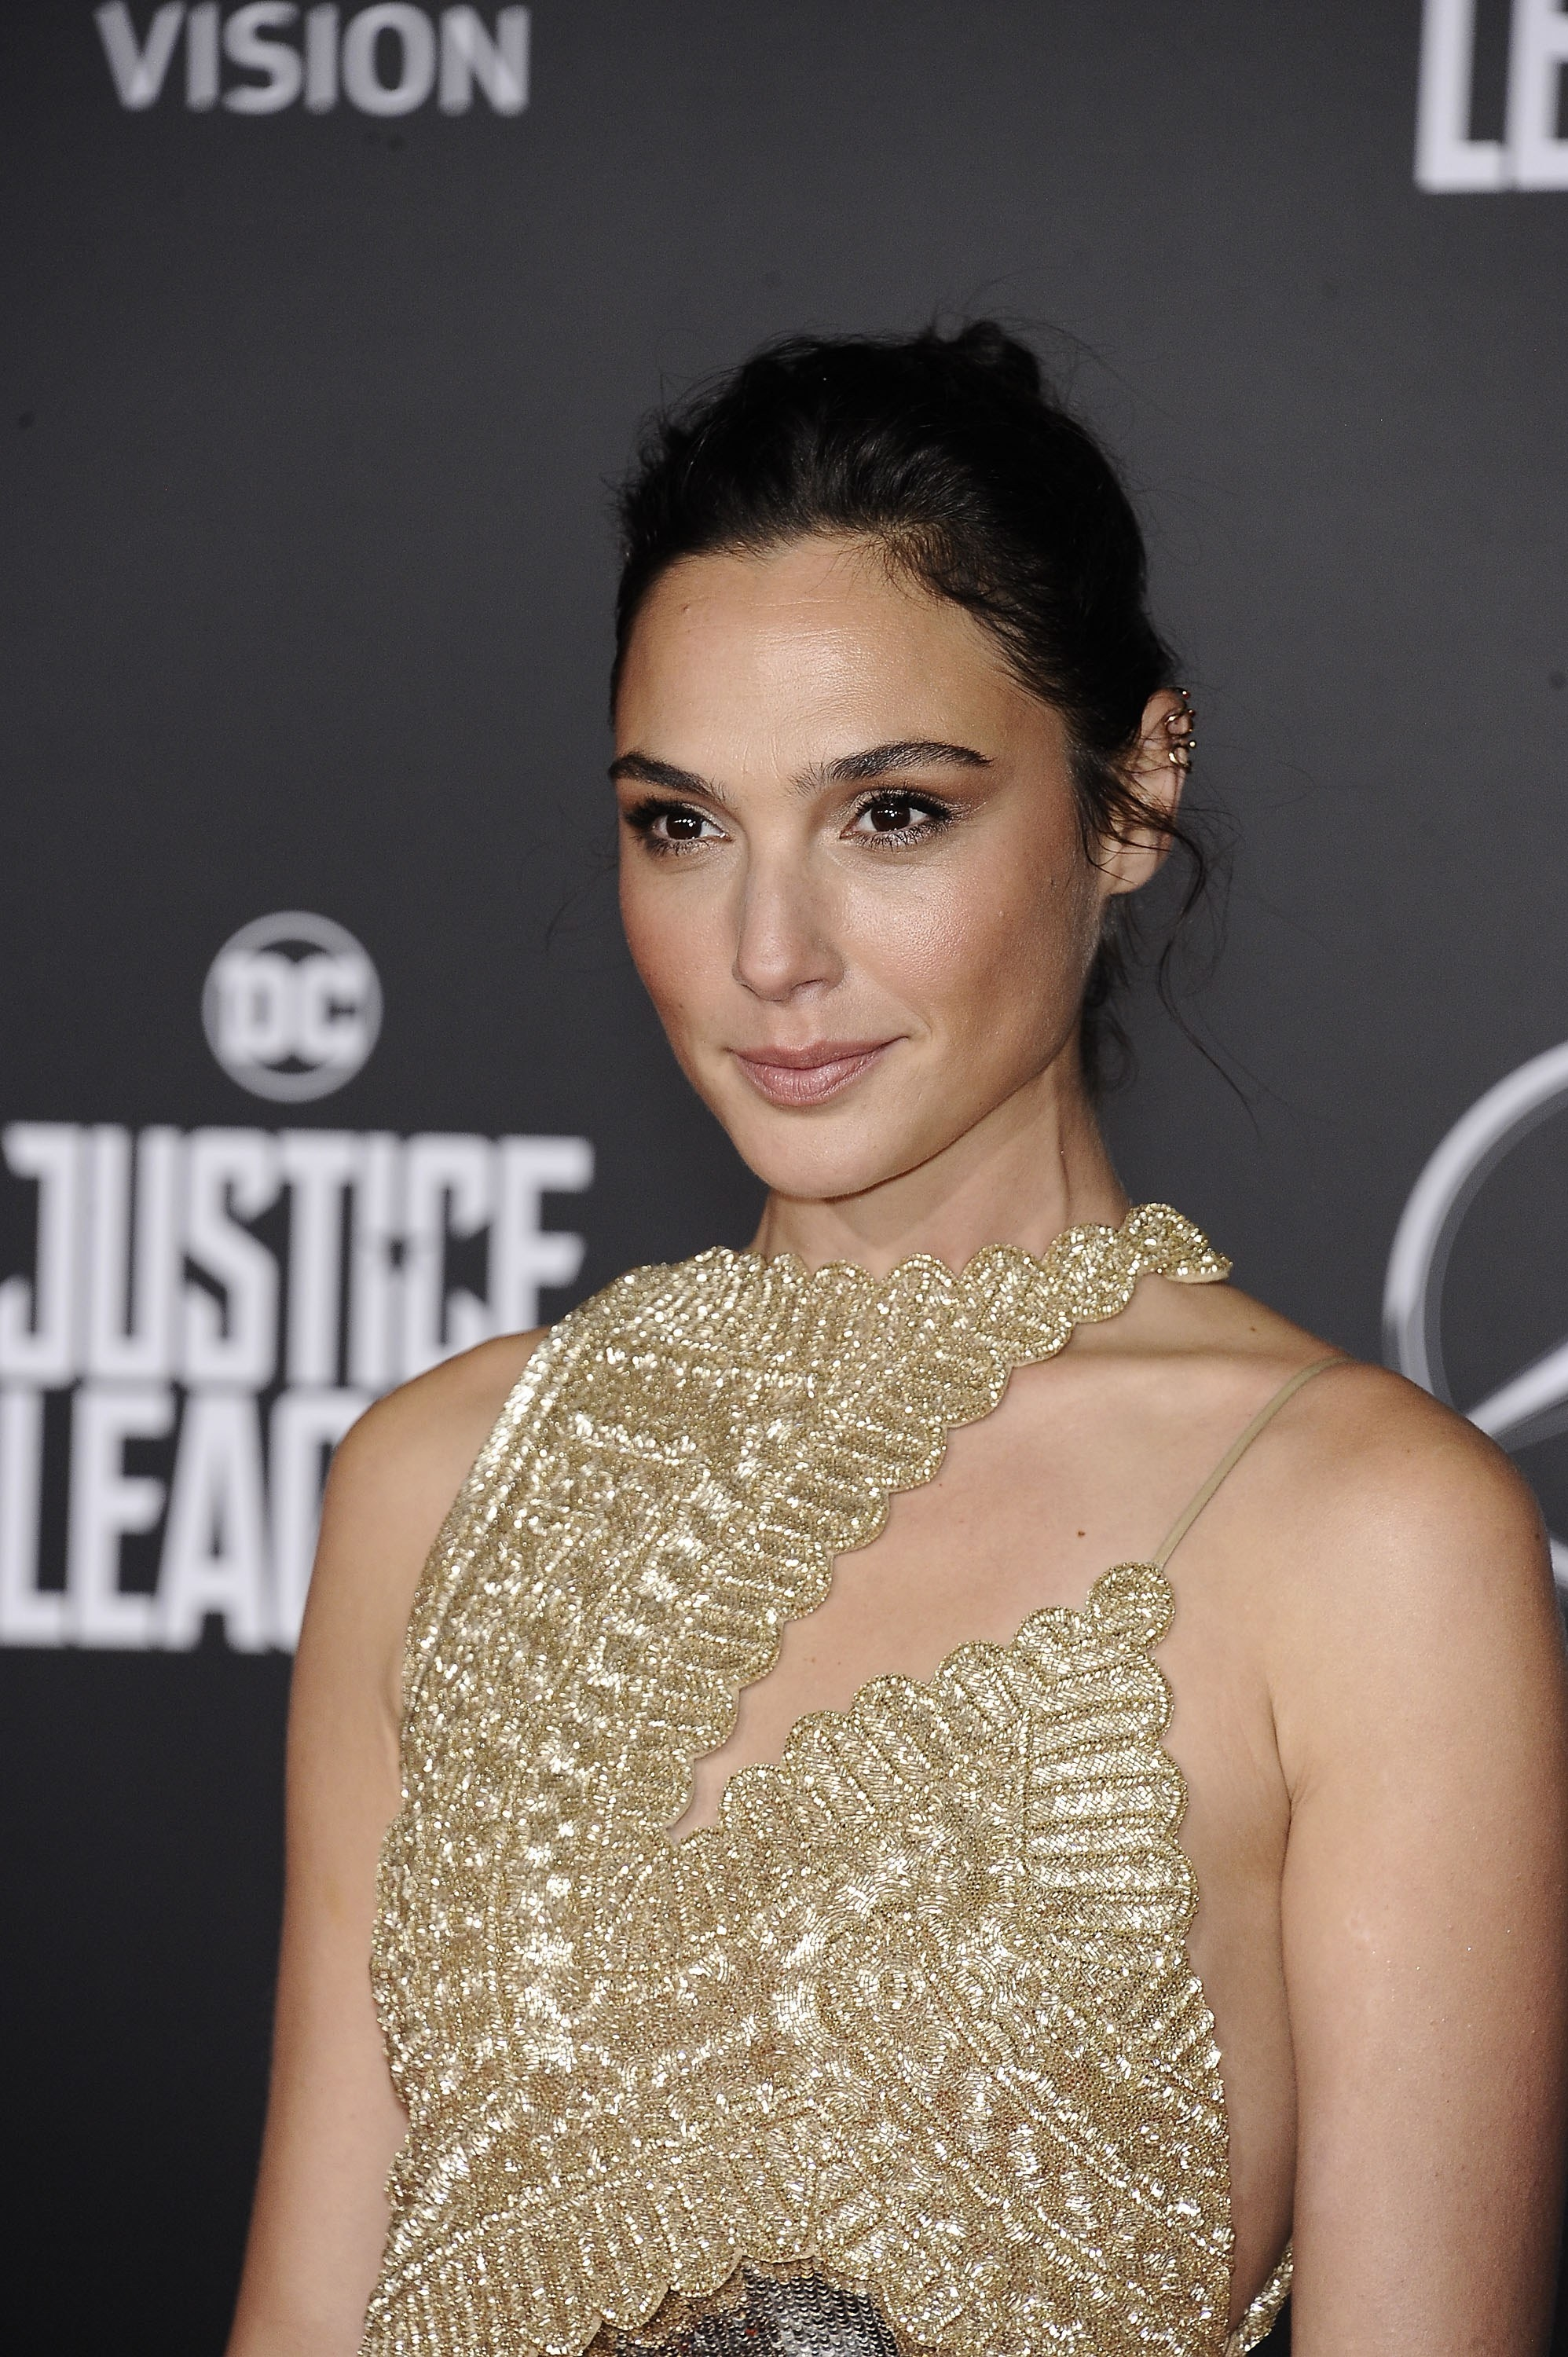 Gal Gadot at the Justice League premiere in 2017